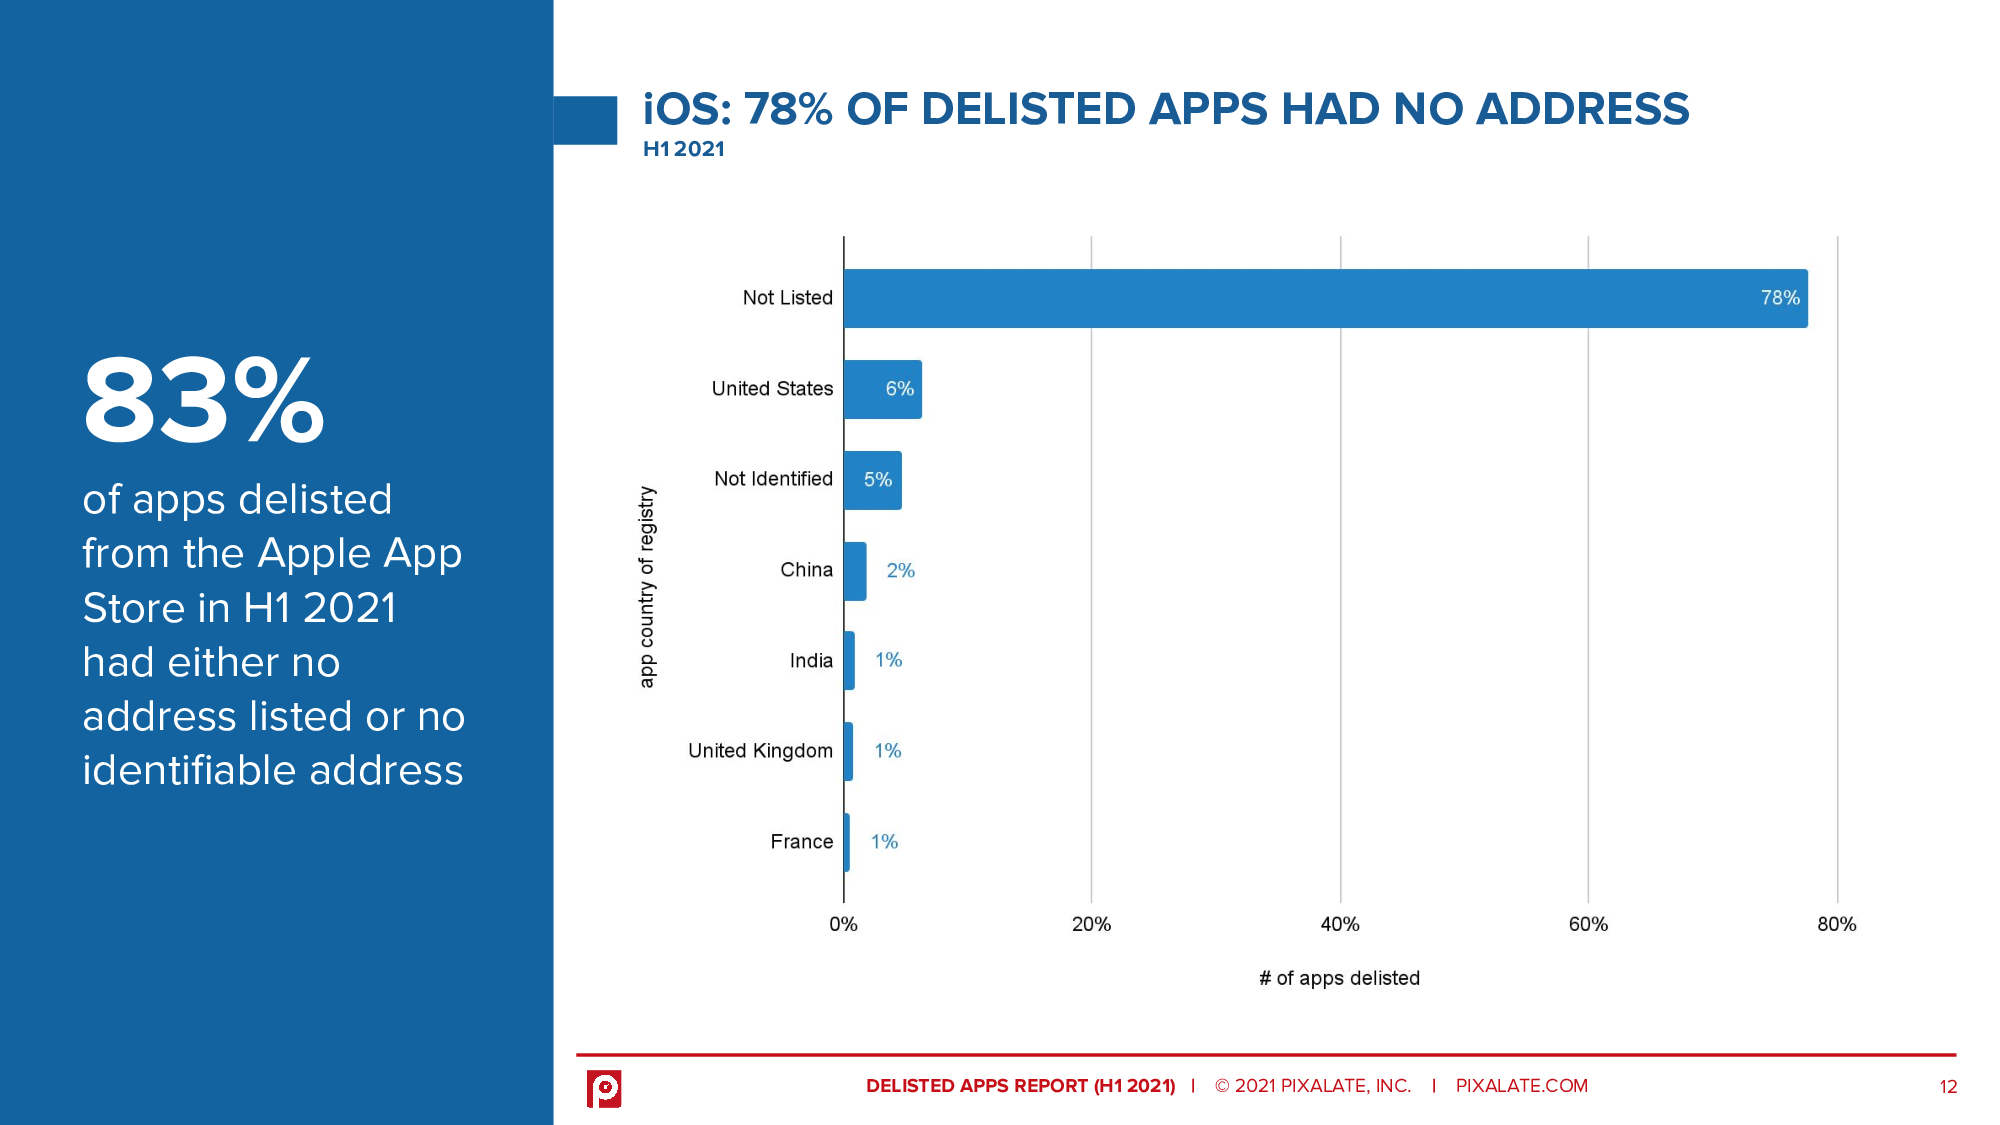 83% of apps delisted from the Apple App Store in H1 2021 had either no address listed or no identifiable address